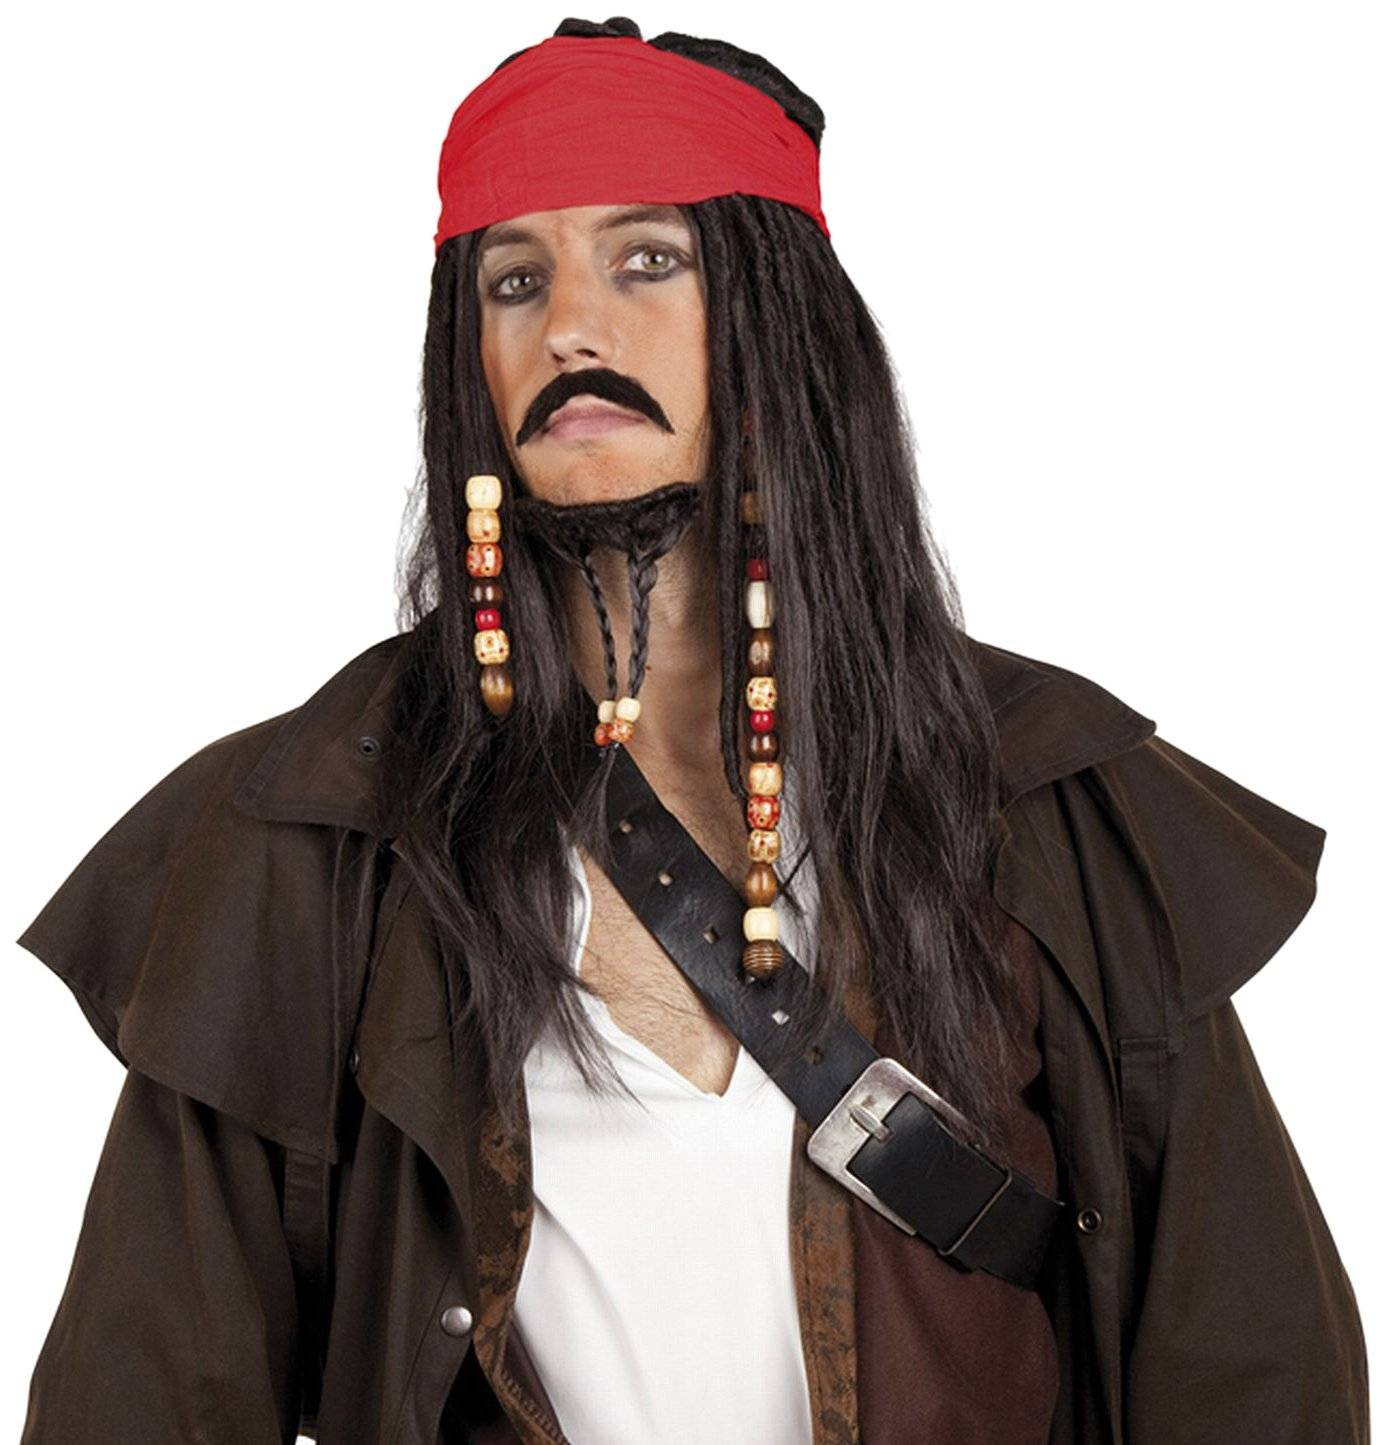 Man pirate costume wig